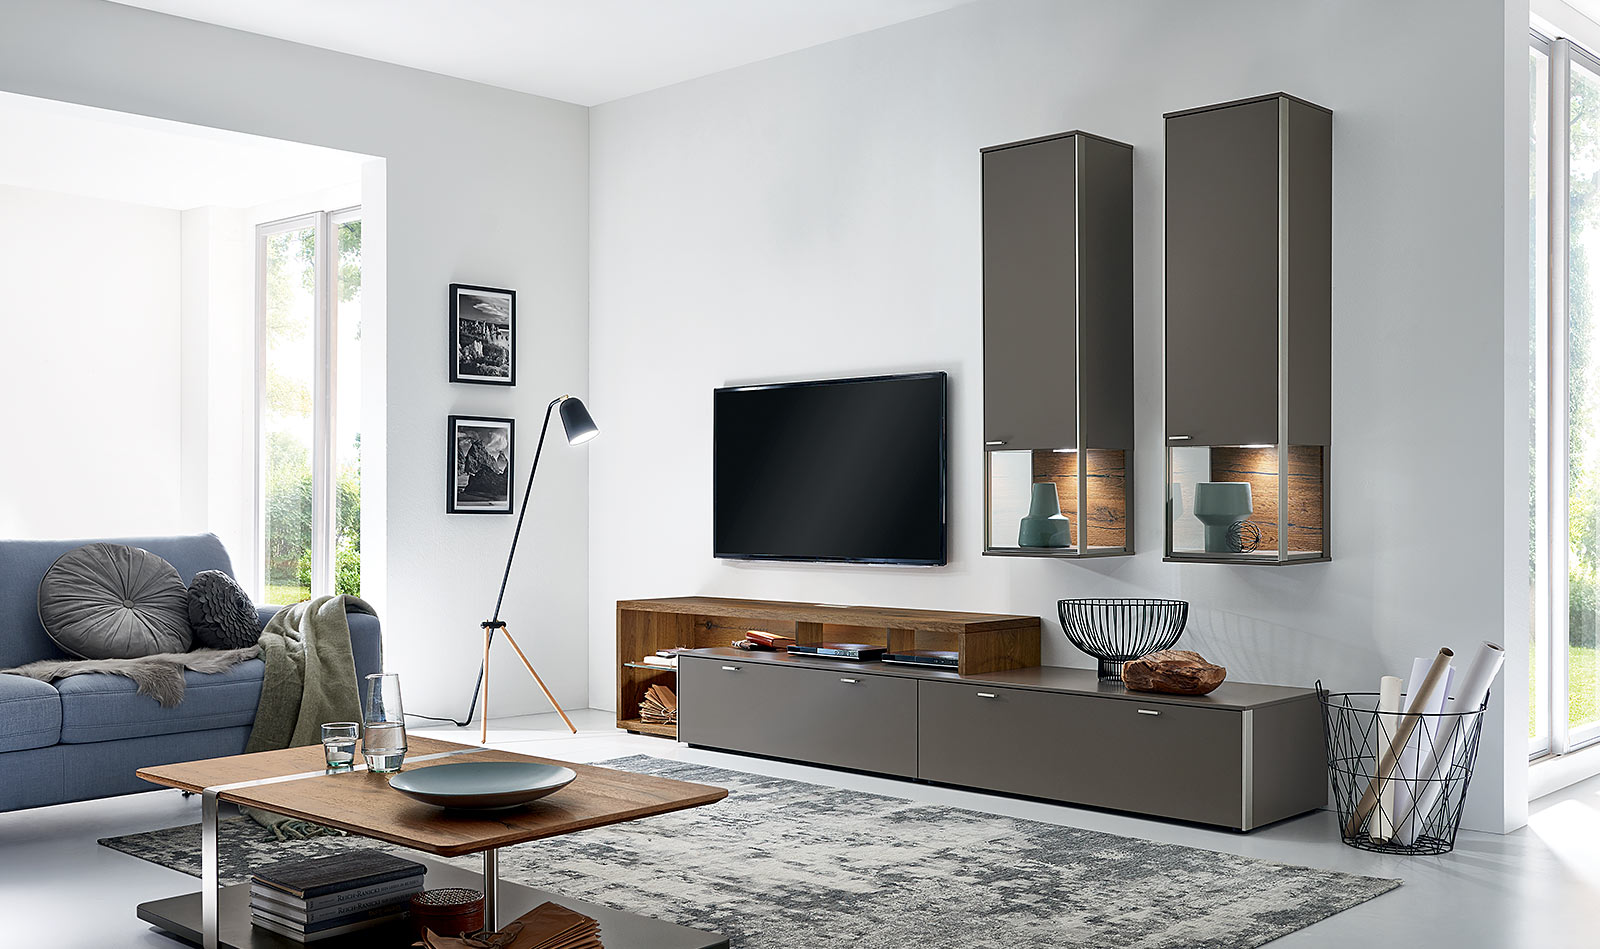 wohnzimmer programme sentino venjakob m bel vorsprung durch design und qualit t. Black Bedroom Furniture Sets. Home Design Ideas